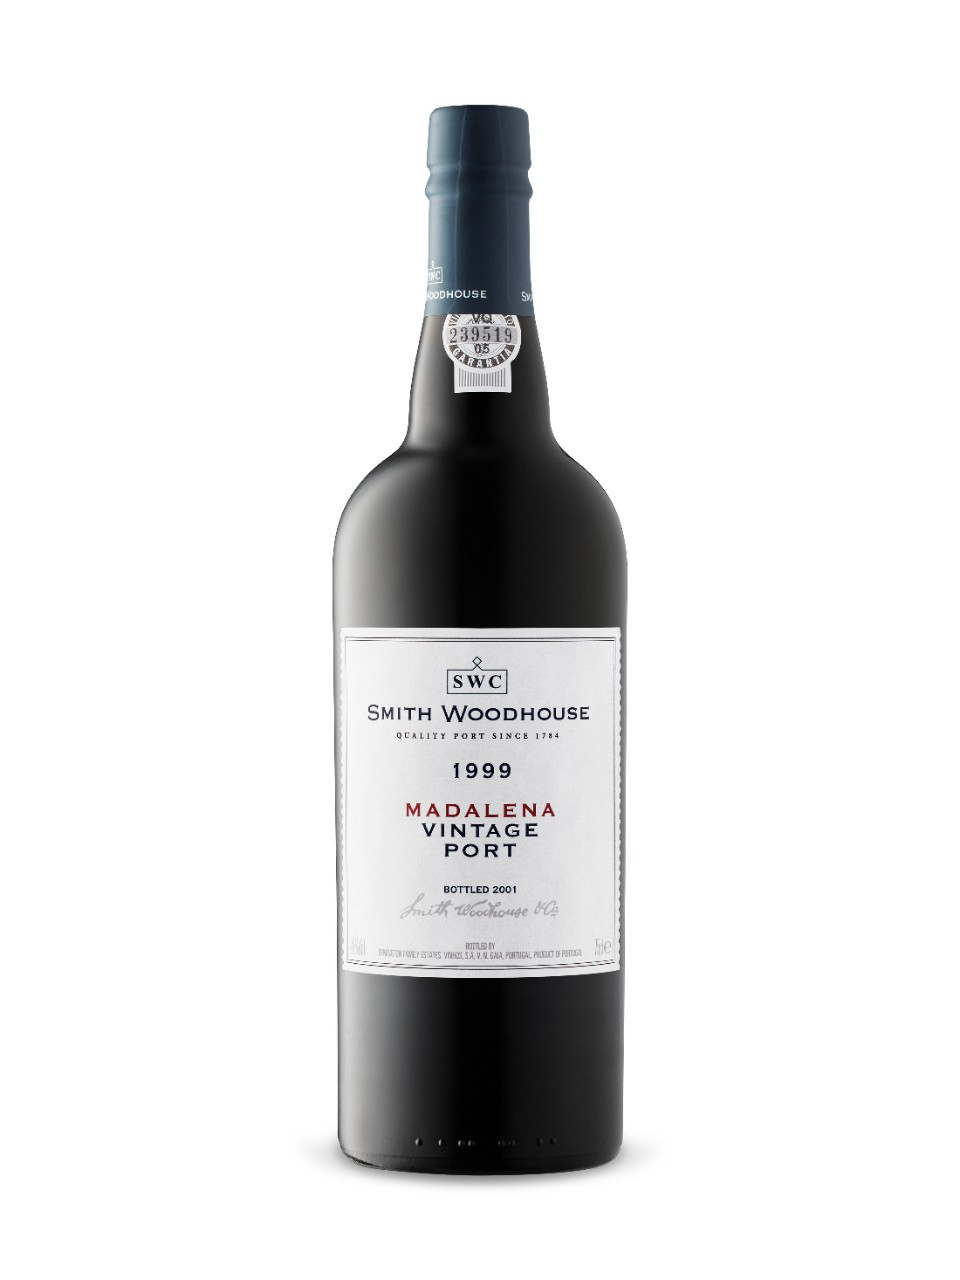 Smith Woodhouse Madalena Vintage Port 1999